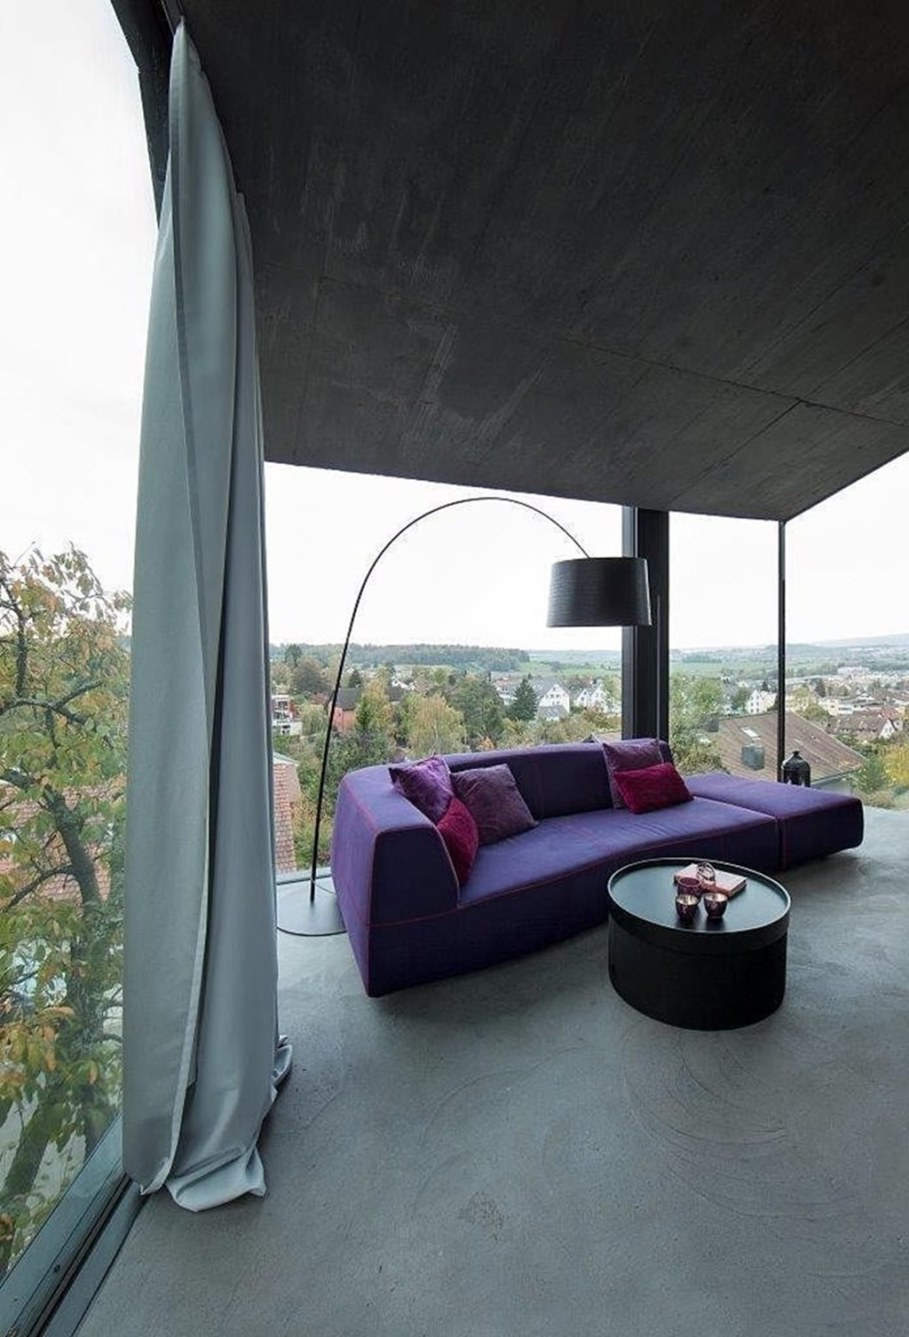 Design country house of glass and concrete 9